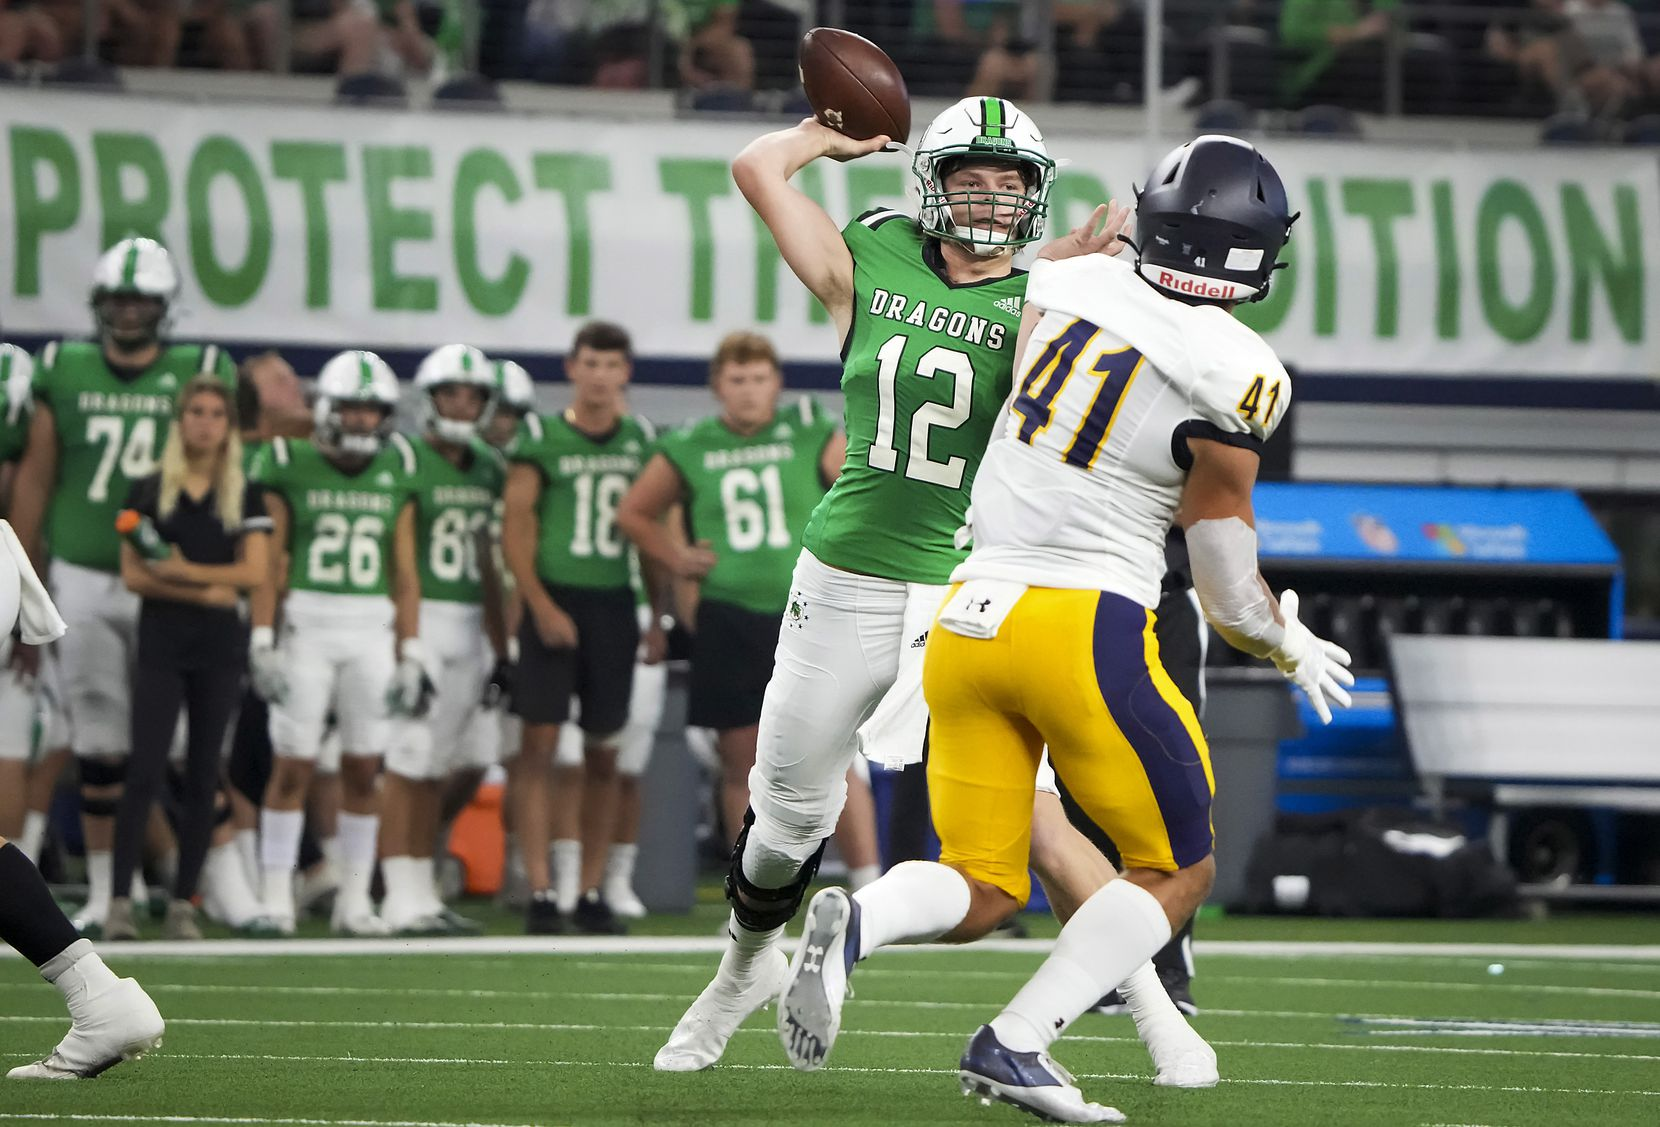 Southlake Carroll quarterback Kaden Anderson (12) throws a pass as Highland Park's George Wright (41) applies pressure during the first half of a high school football game at AT&T Stadium on Thursday, Aug. 26, 2021, in Arlington.